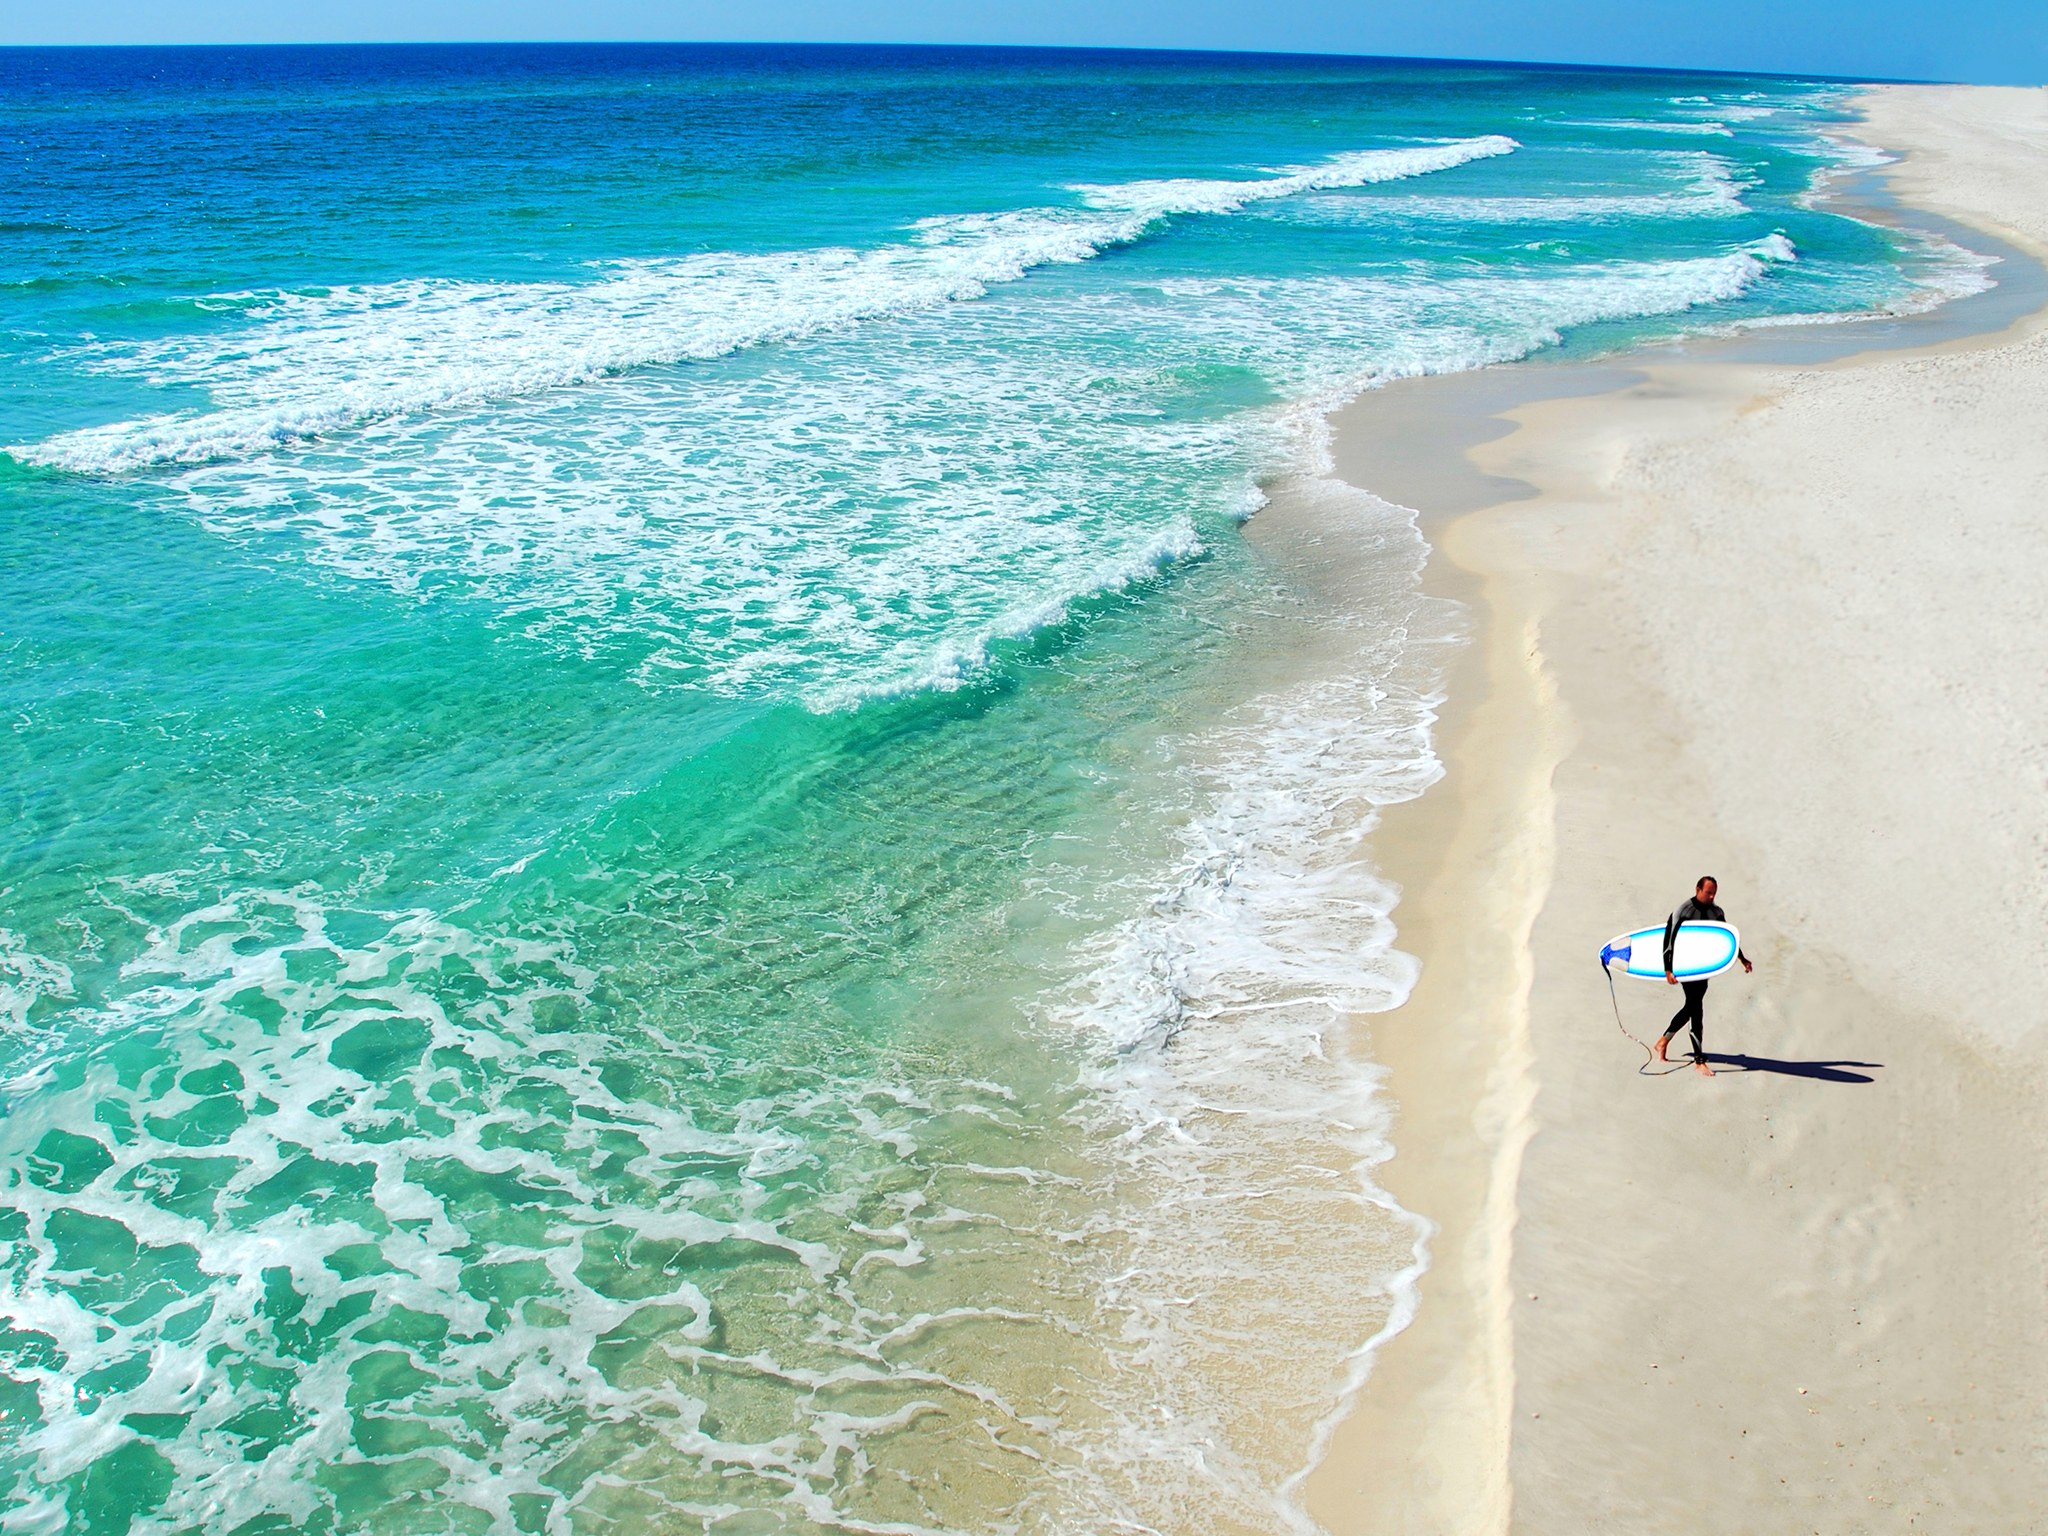 florida-beaches-pensacola-cr-getty